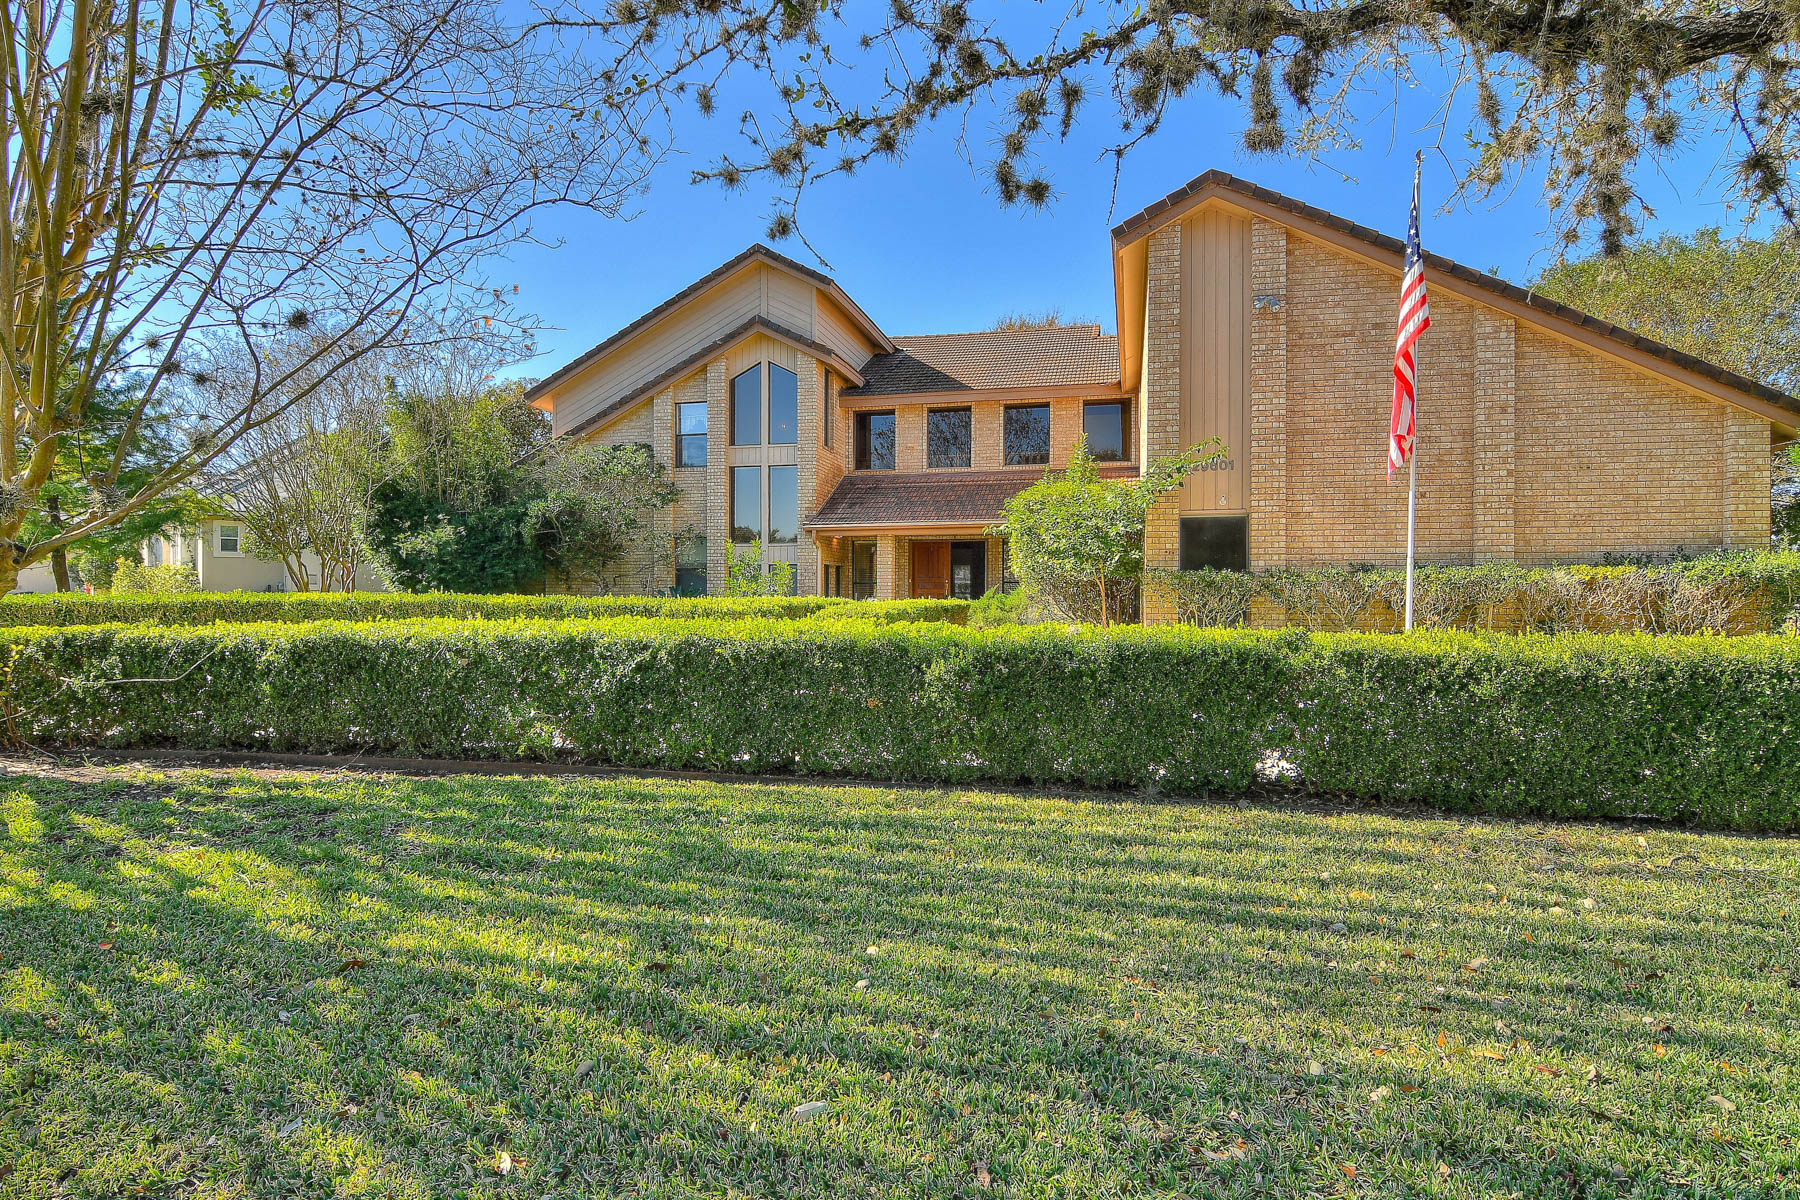 Single Family Home for Sale at Beautiful home located in Fair Oaks Ranch 29601 No Le Hace Dr Fair Oaks, Texas 78015 United States